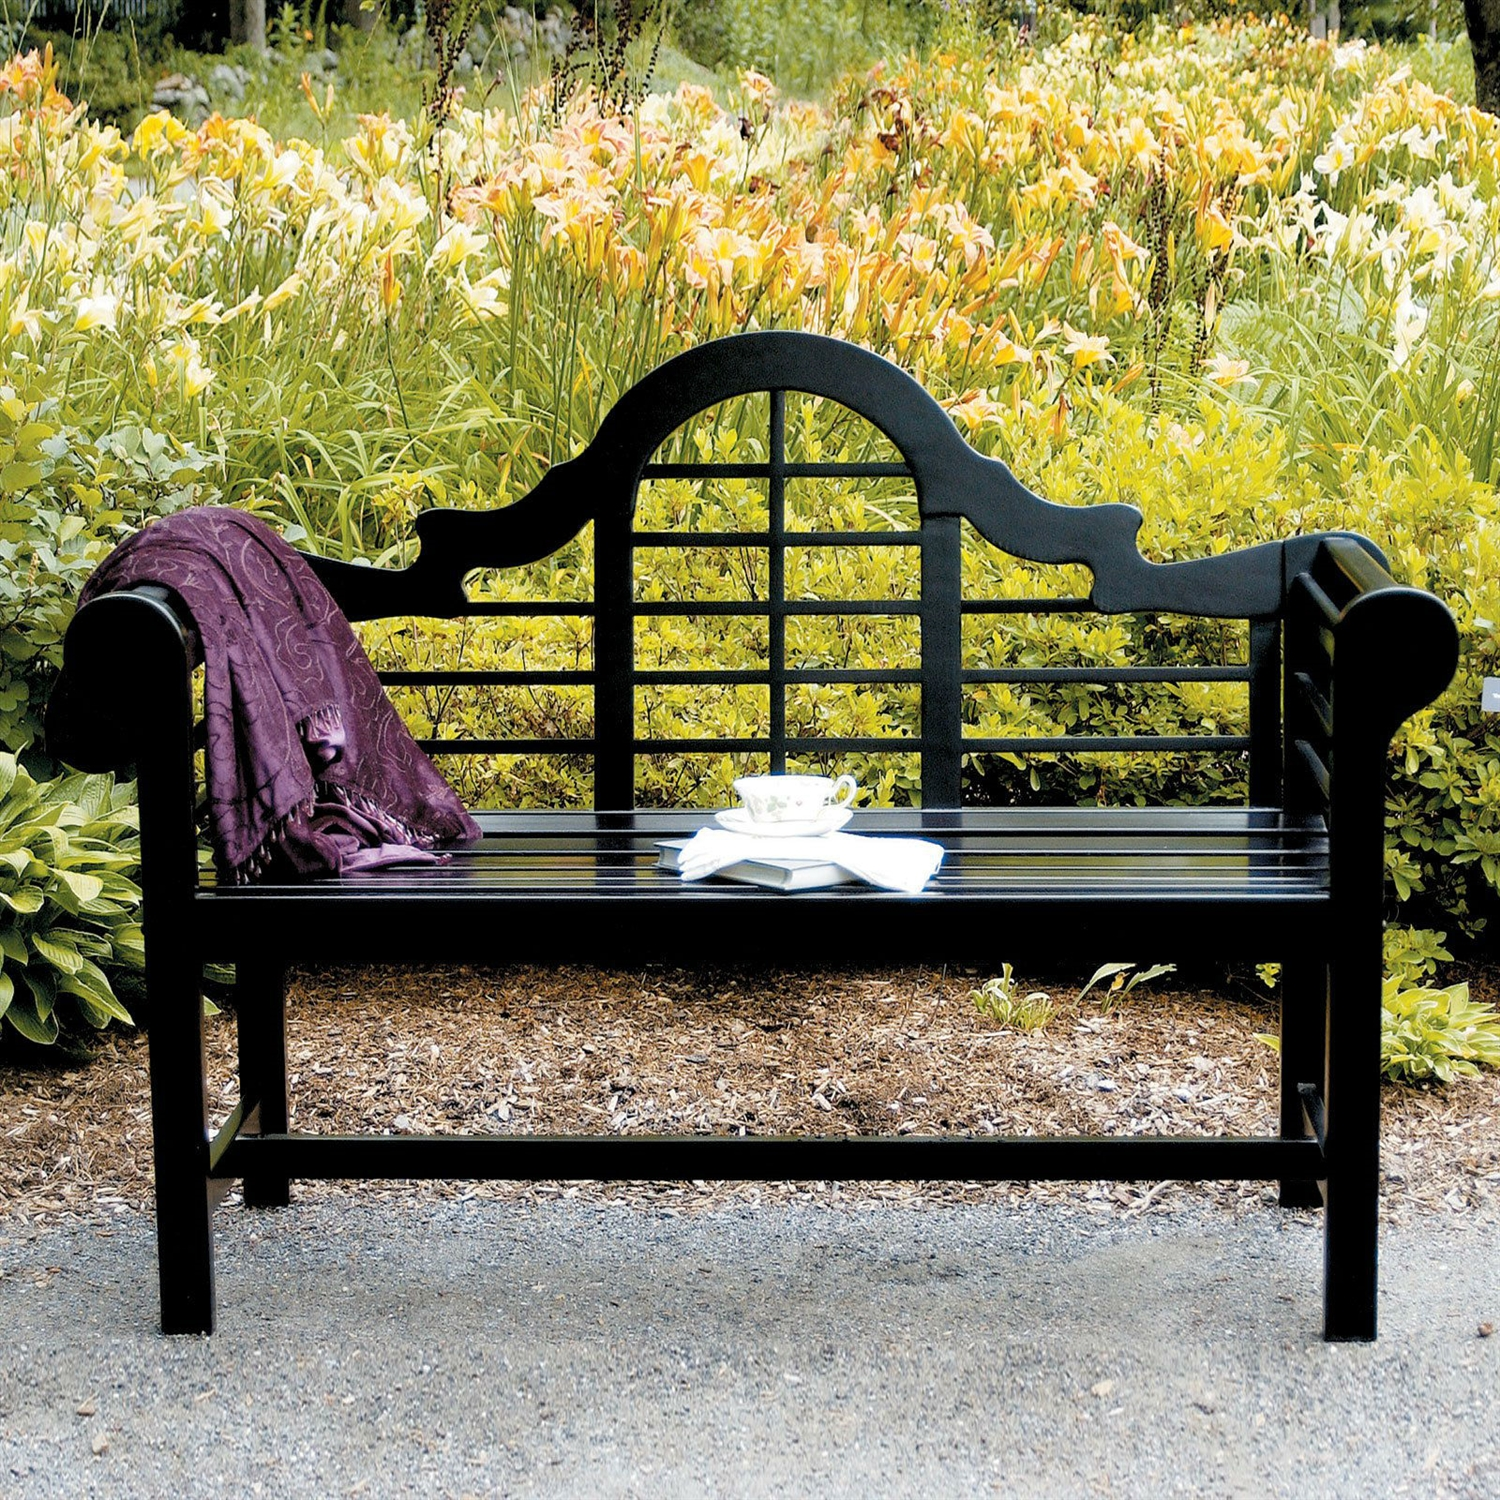 Admirable Weather Resistant 4 5 Ft Eucalyptus Outdoor Garden Bench In Black Ncnpc Chair Design For Home Ncnpcorg